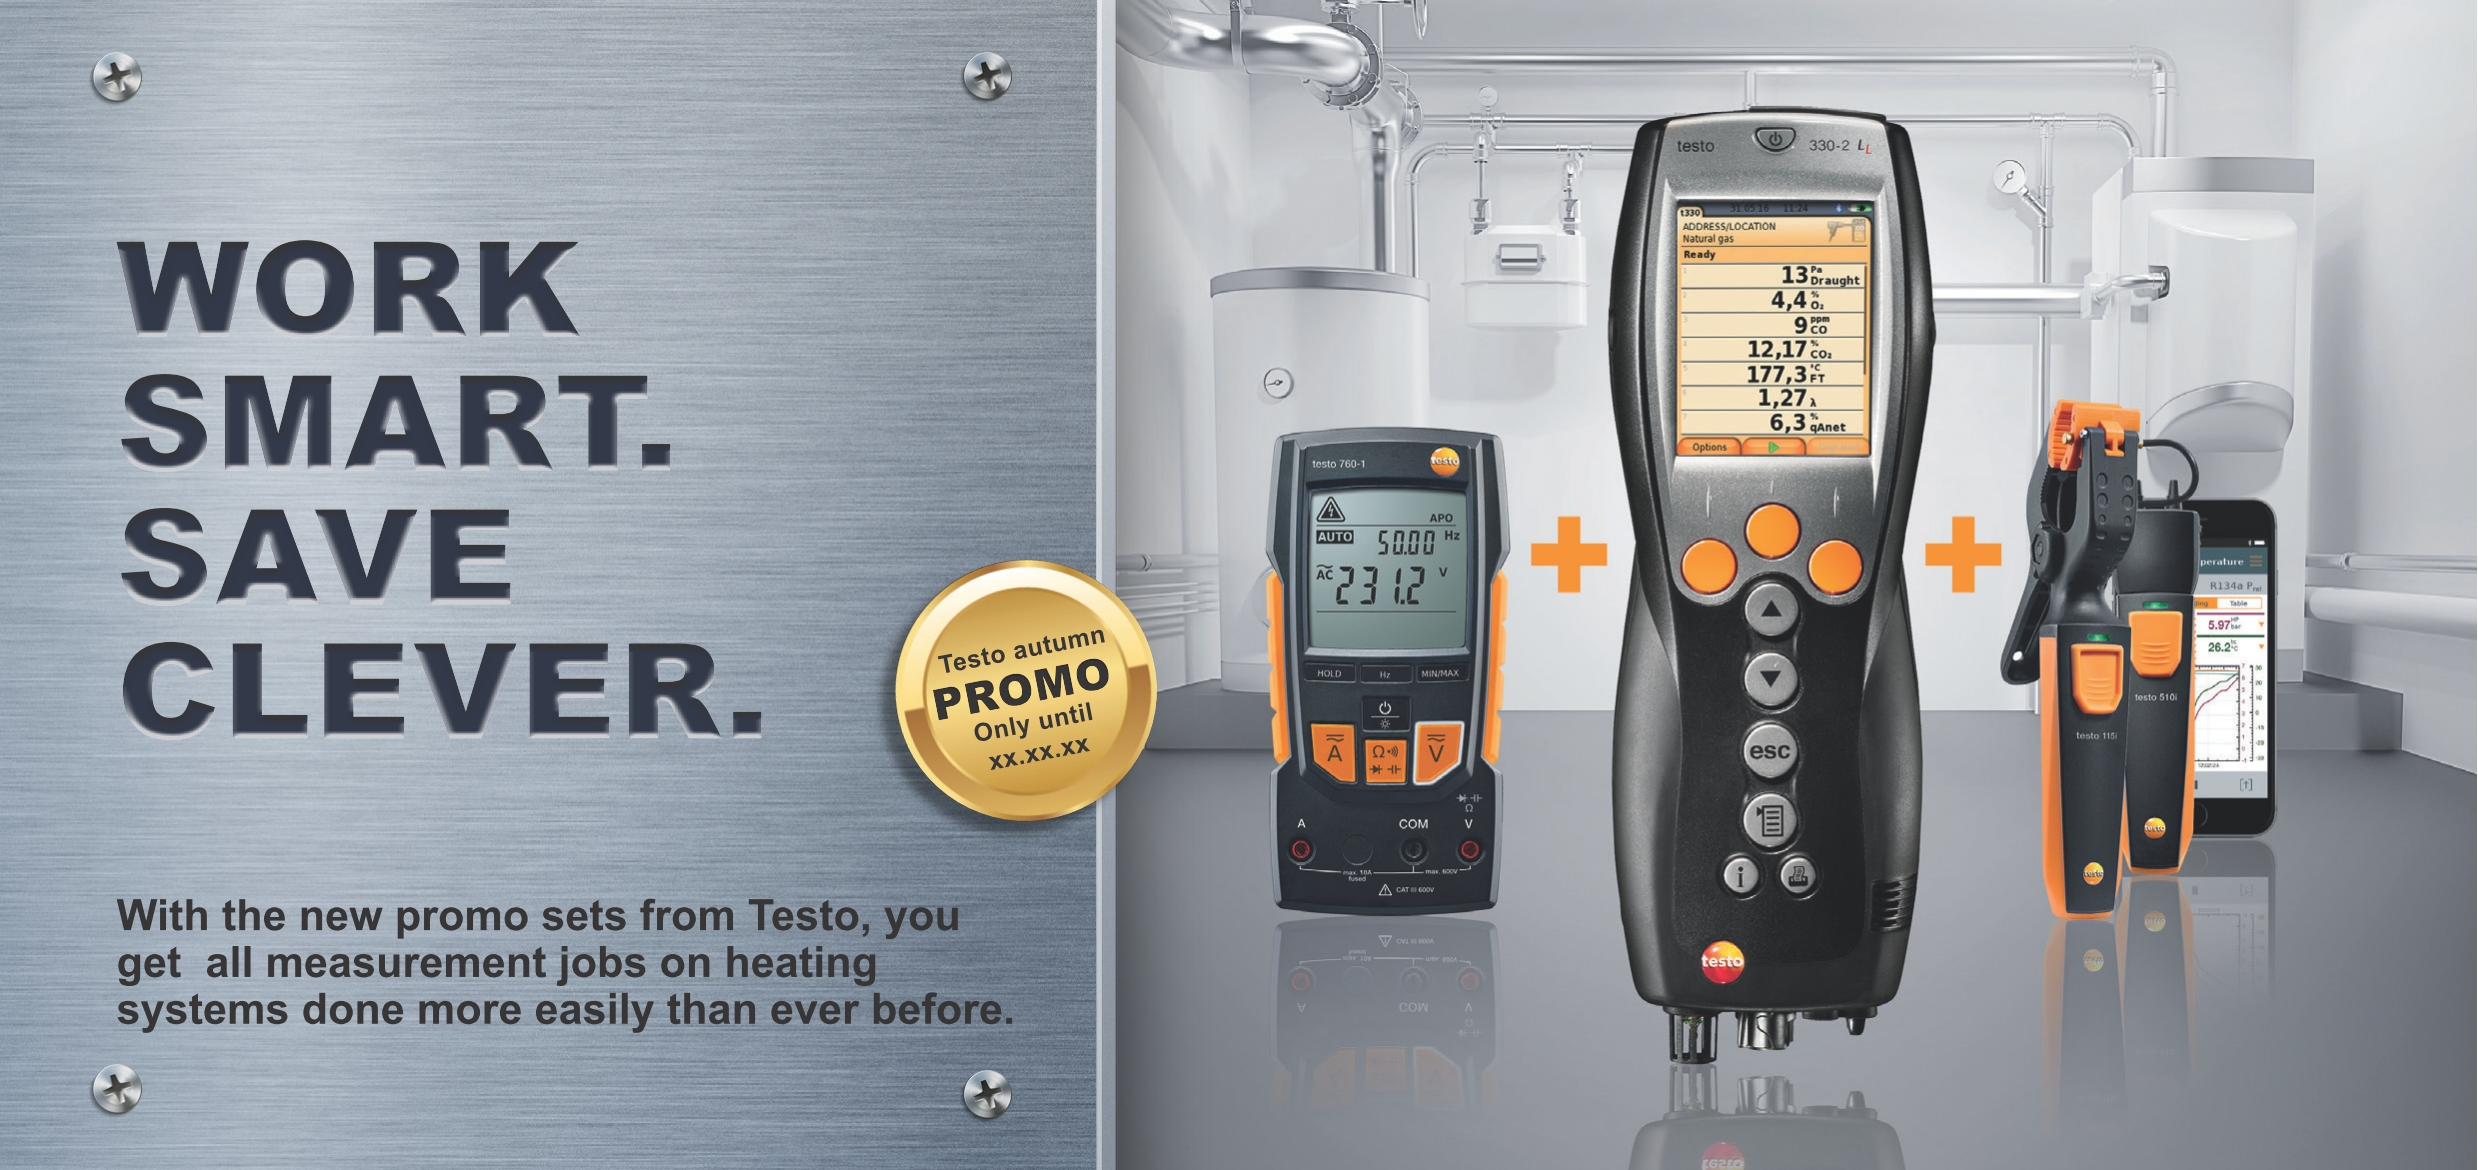 Global Test Smart Probe Testo 510i Attractive Promo Sets From For All Measurement Jobs On Heating Systems